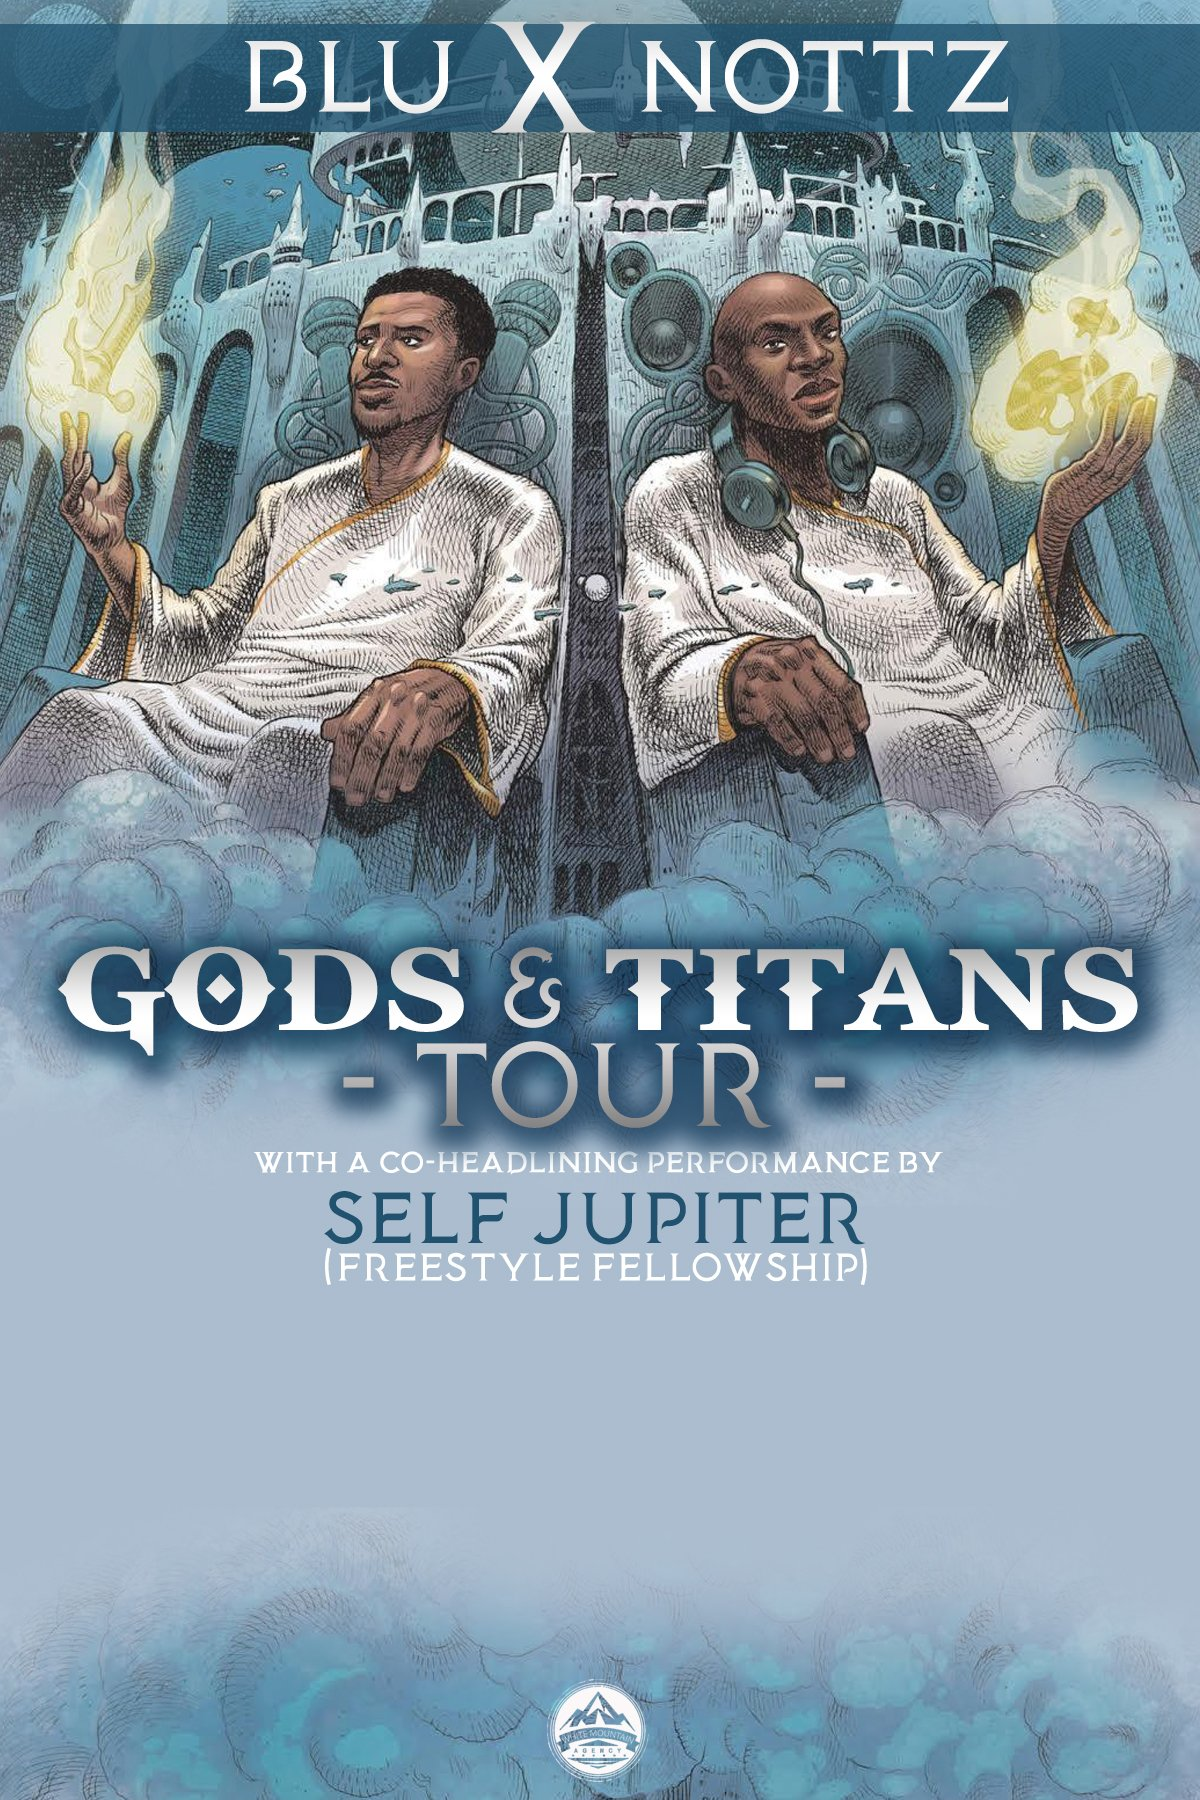 Image result for BLU Self Jupiter the titan tour